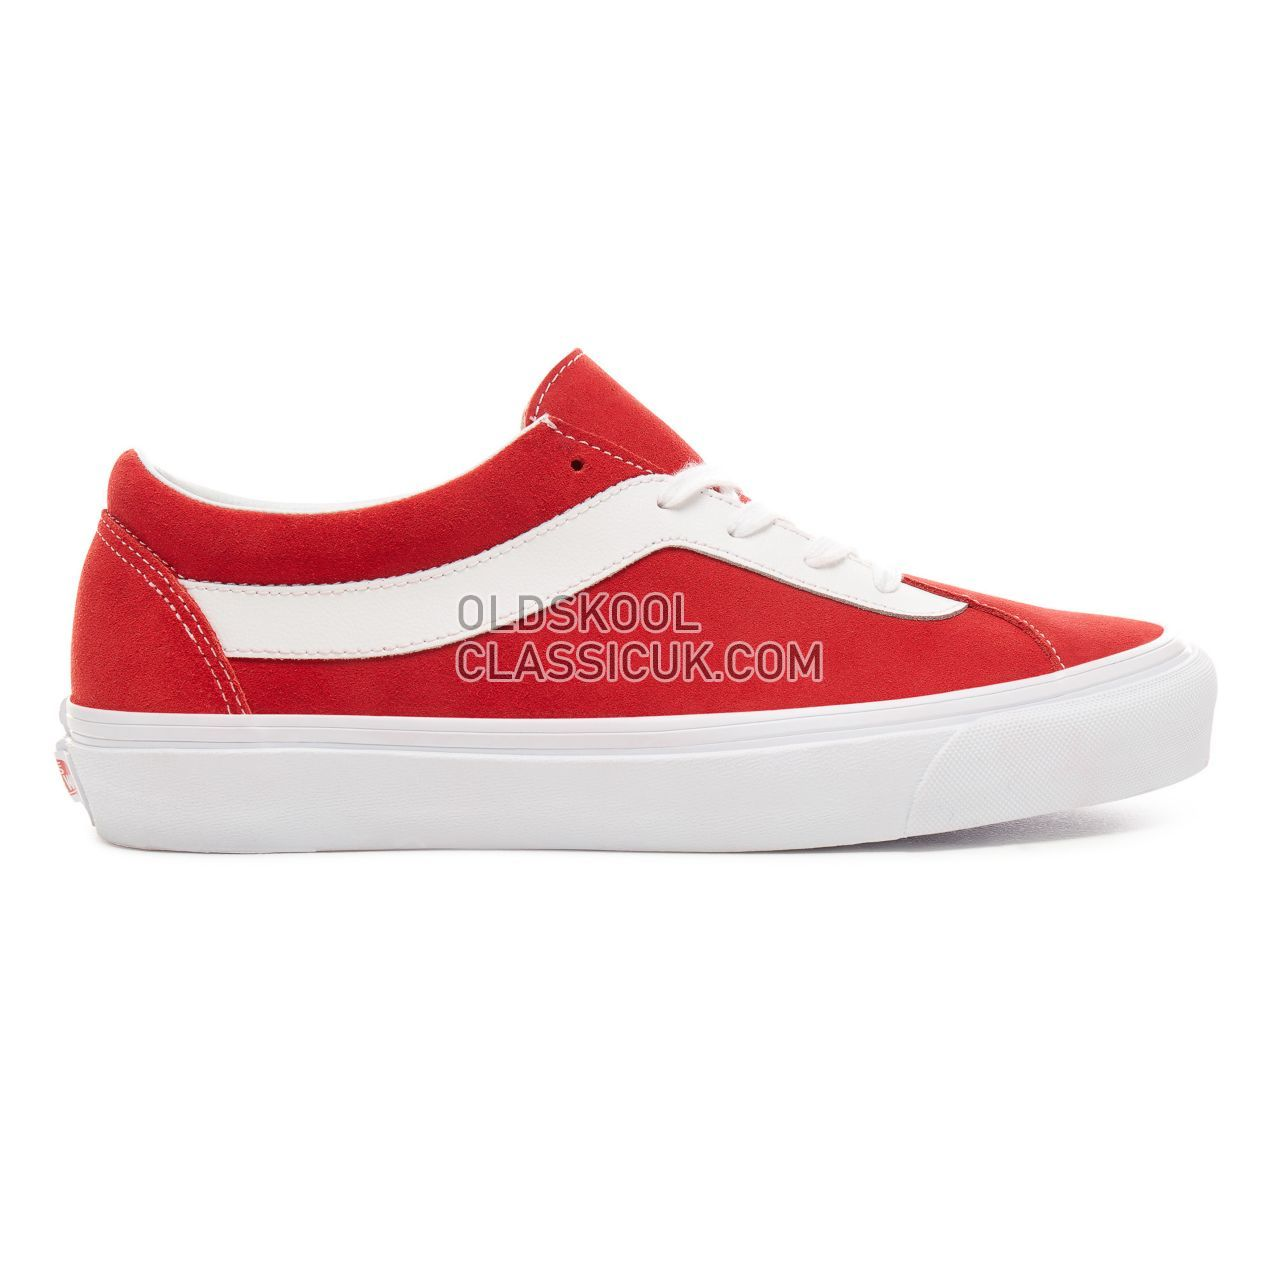 Vans Staple Bold Ni Sneakers Mens (Staple) Racing Red/True White VN0A3WLPULC Shoes